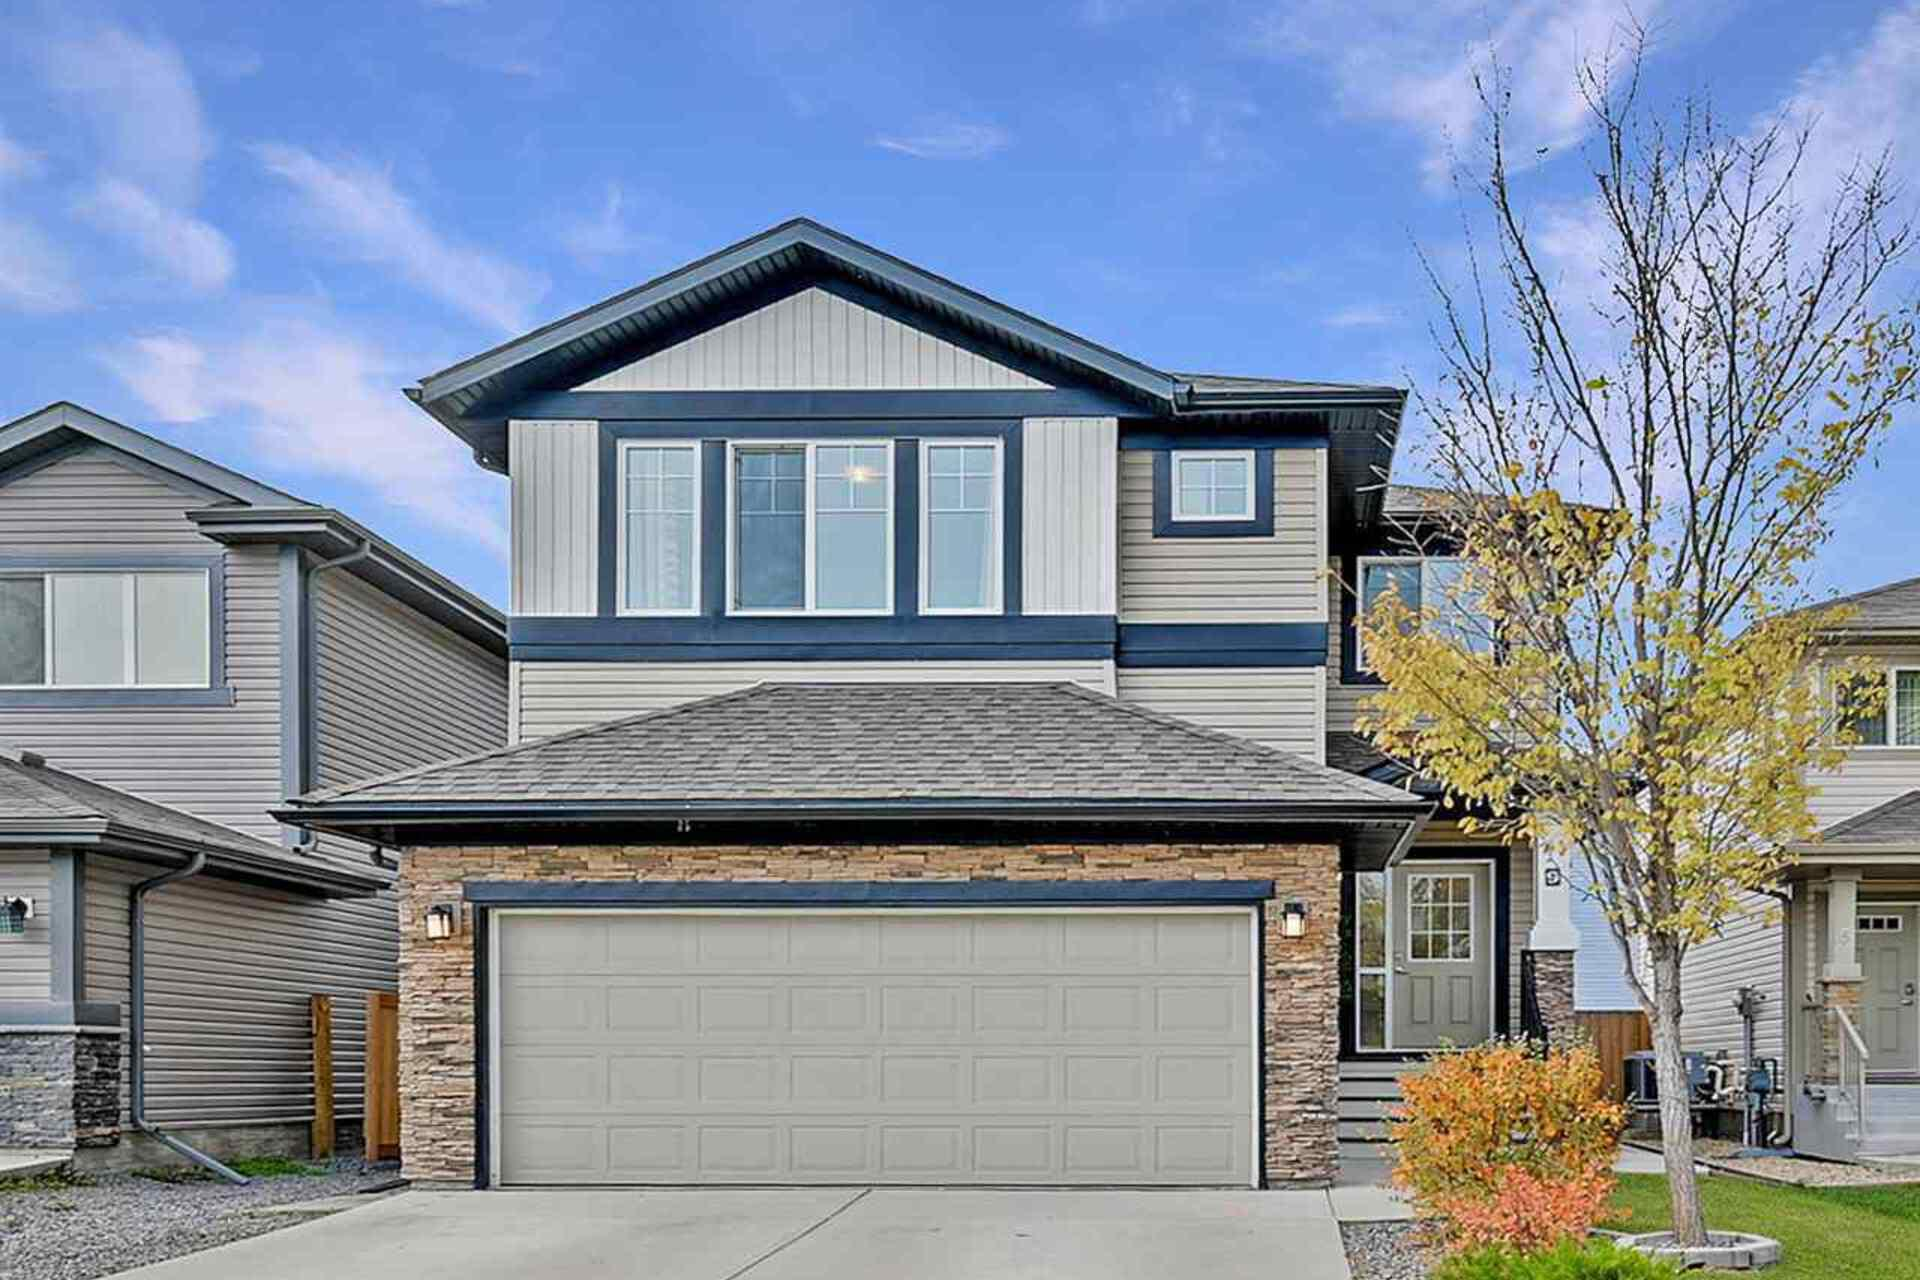 9 Santa Fe Court, South Fort, Fort Saskatchewan